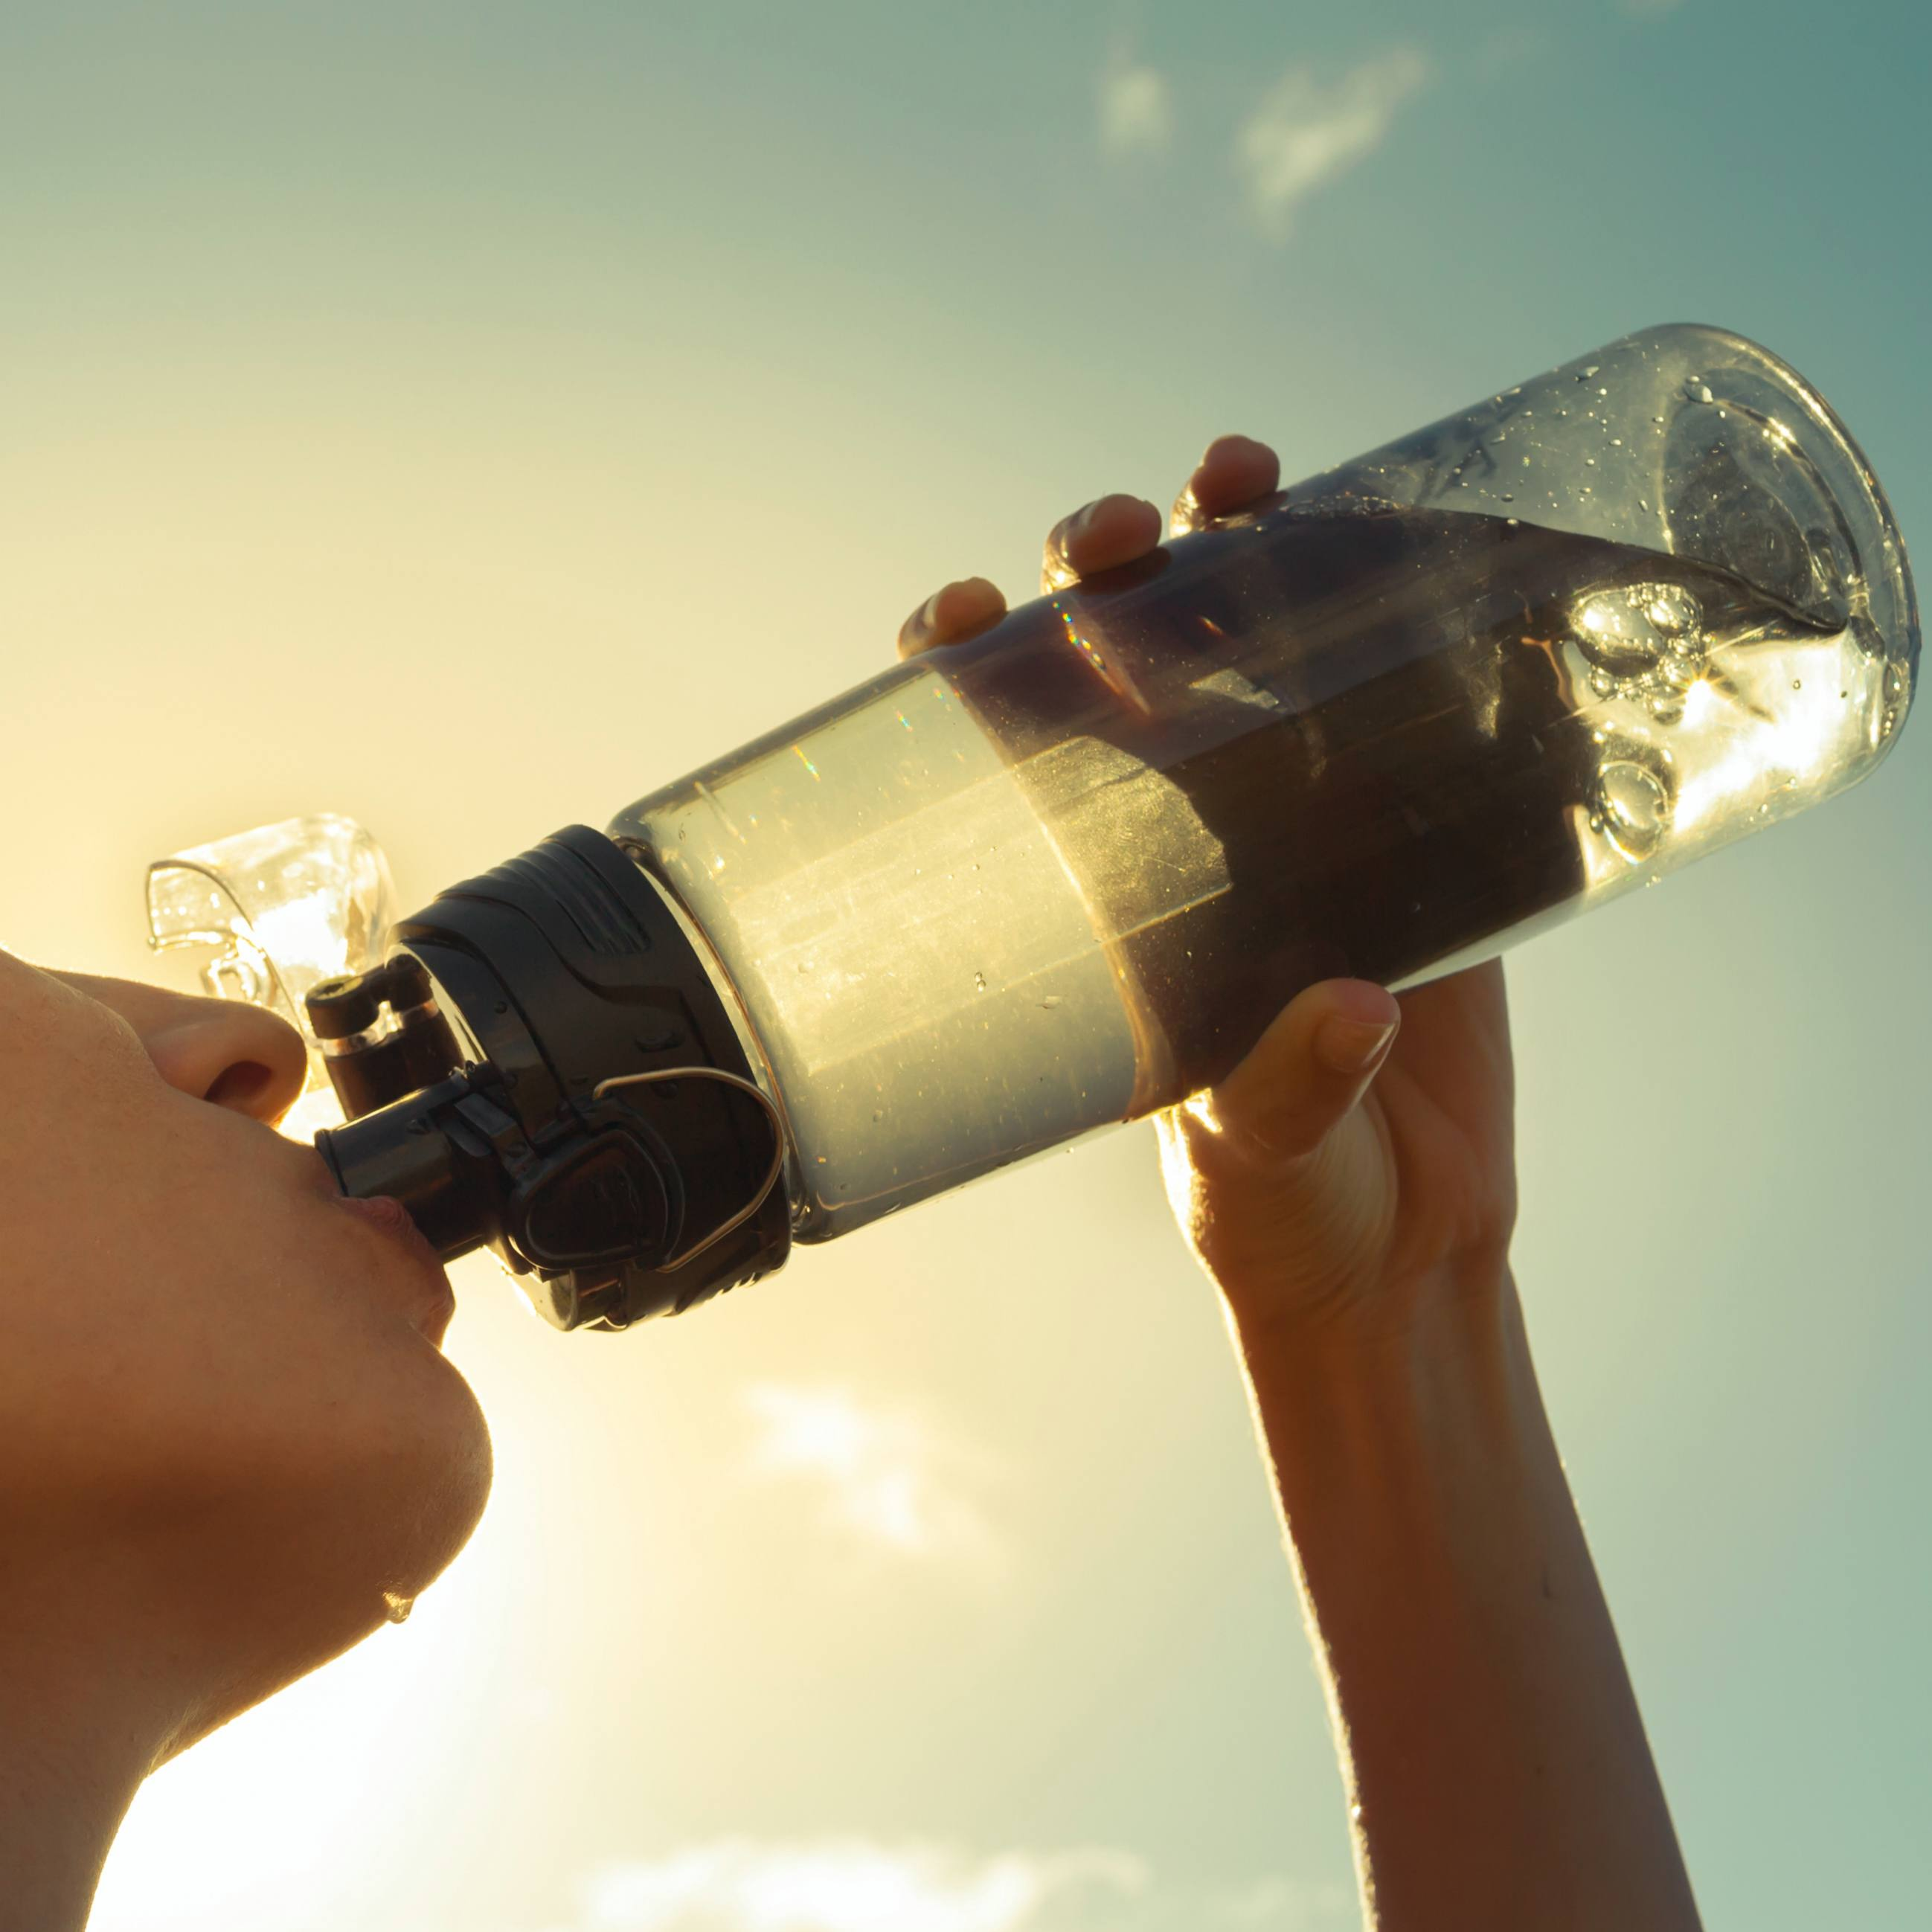 a woman drinking from a water bottle out in the hot sun